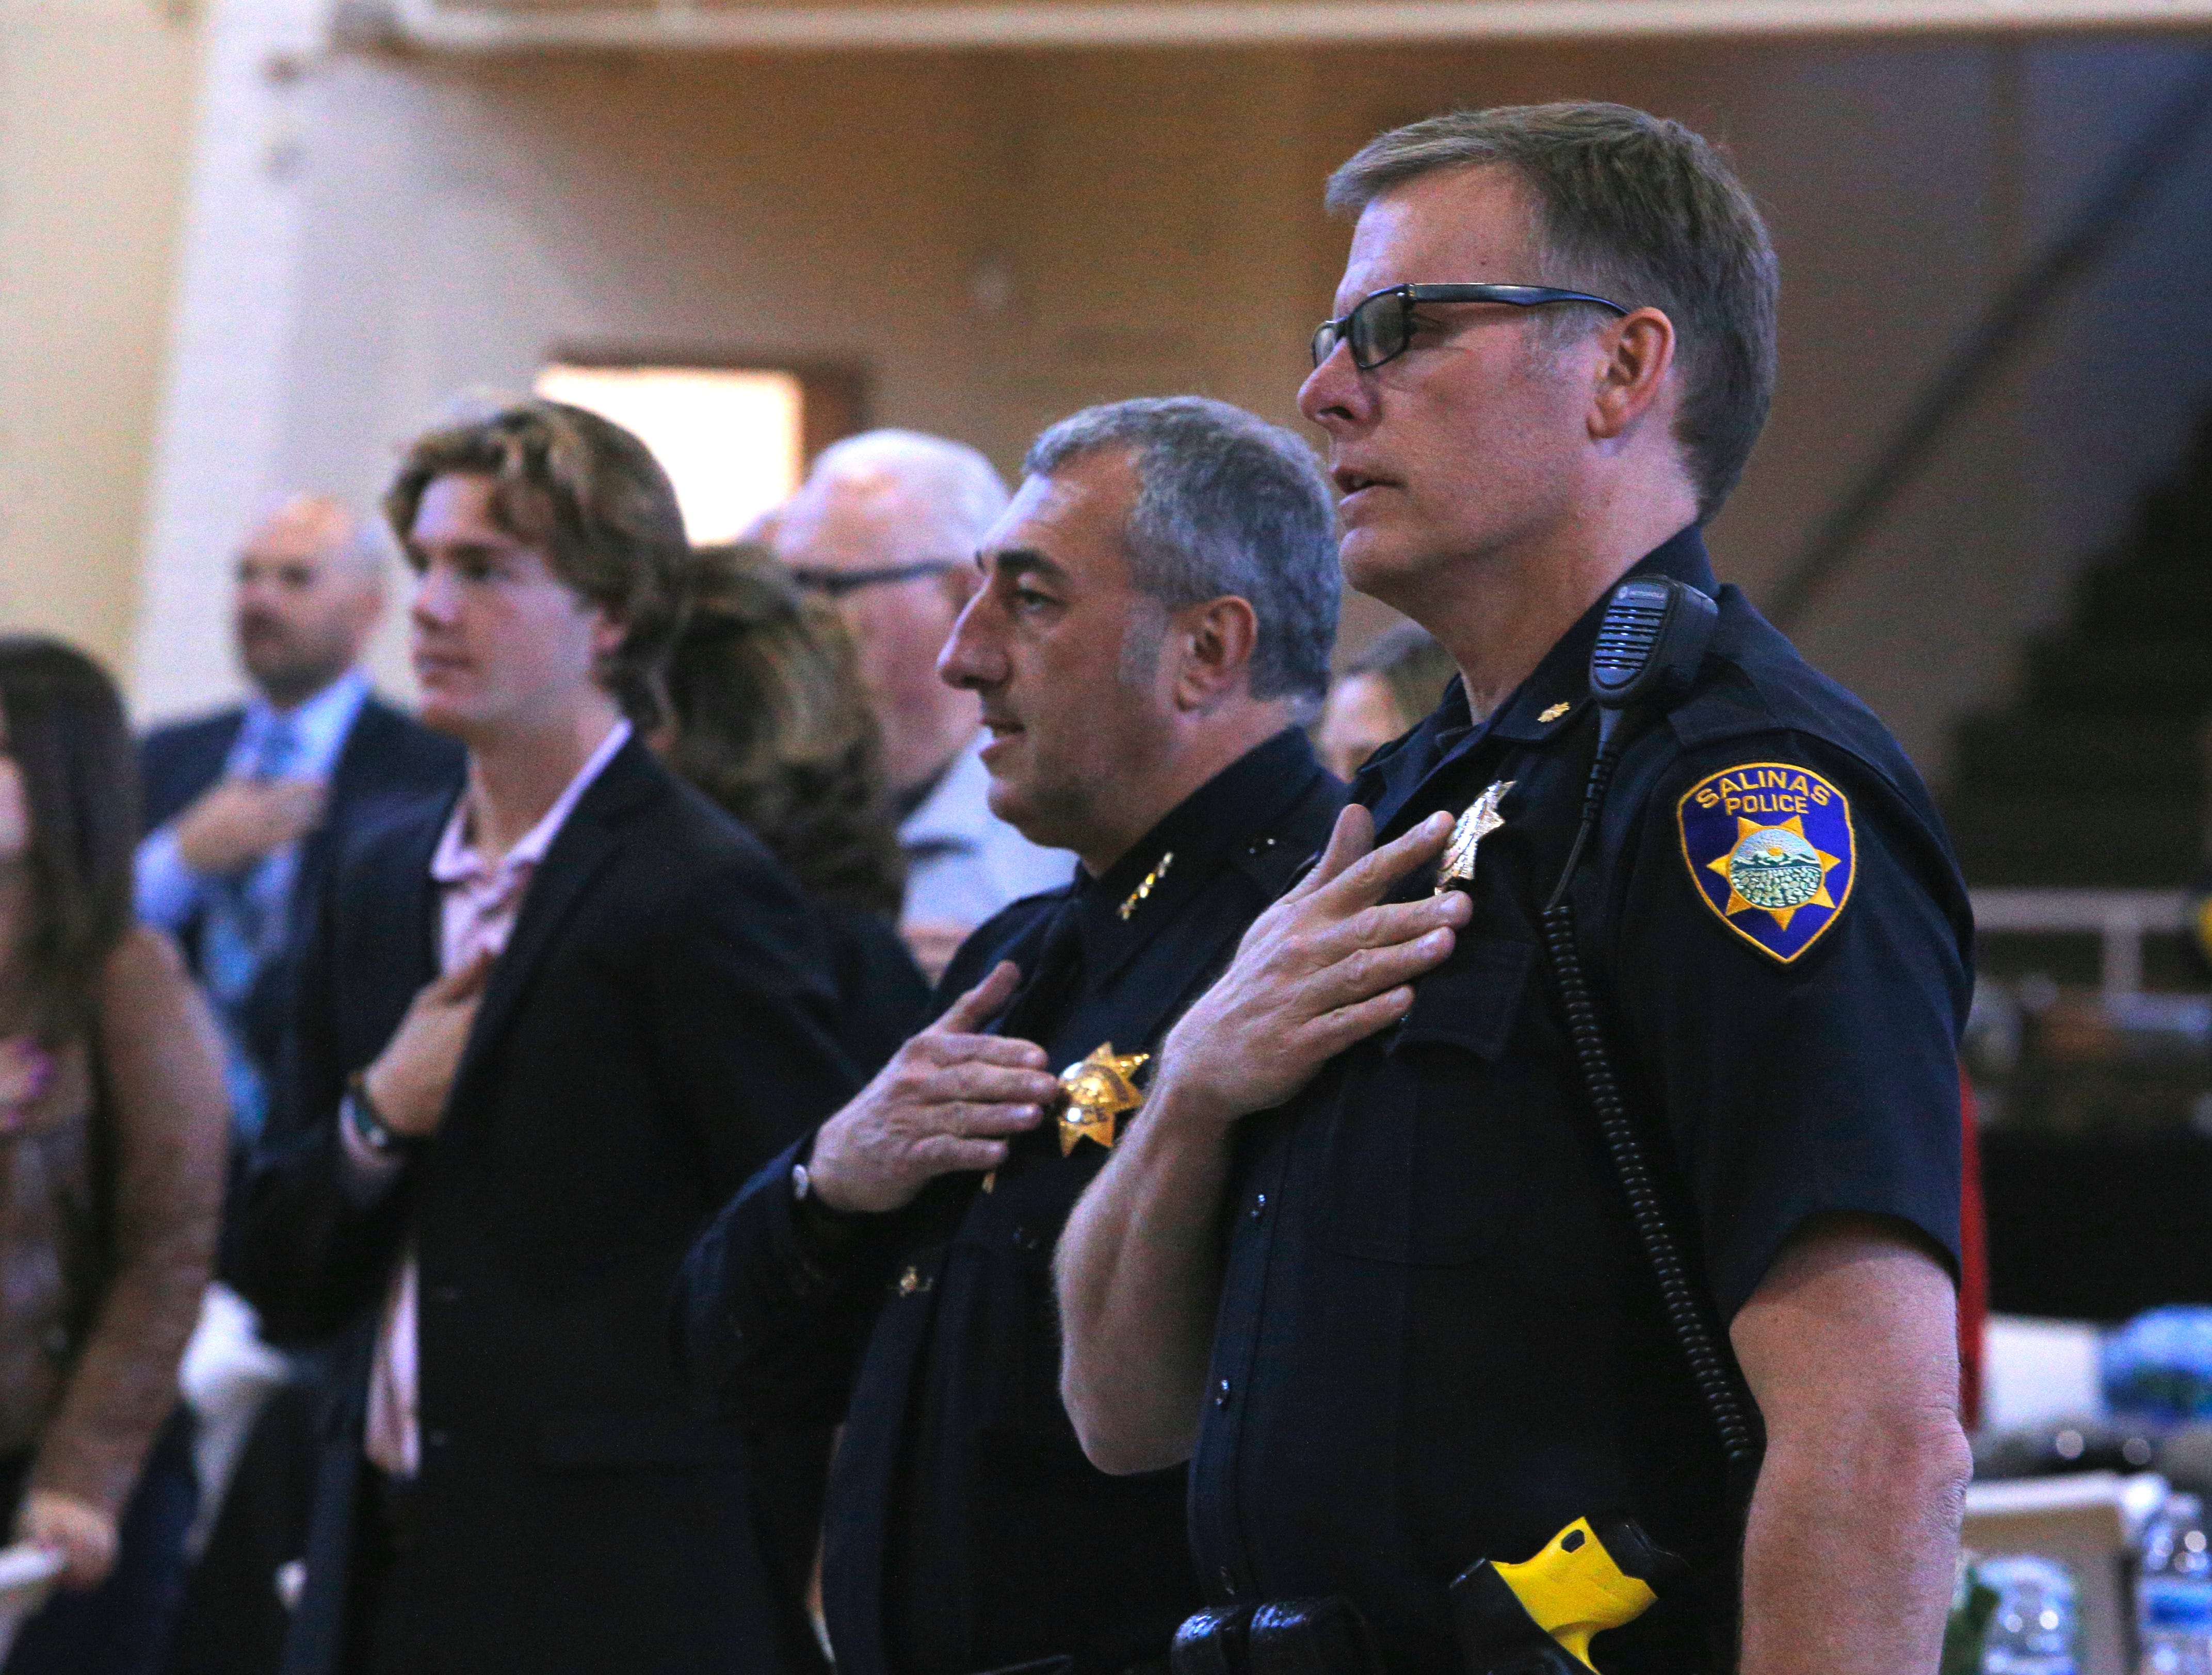 Cmdr. Vince Maiorana and others recite the Pledge of Allegiance March 14, 2019, at the Salinas Police Department's 2018 awards ceremony.